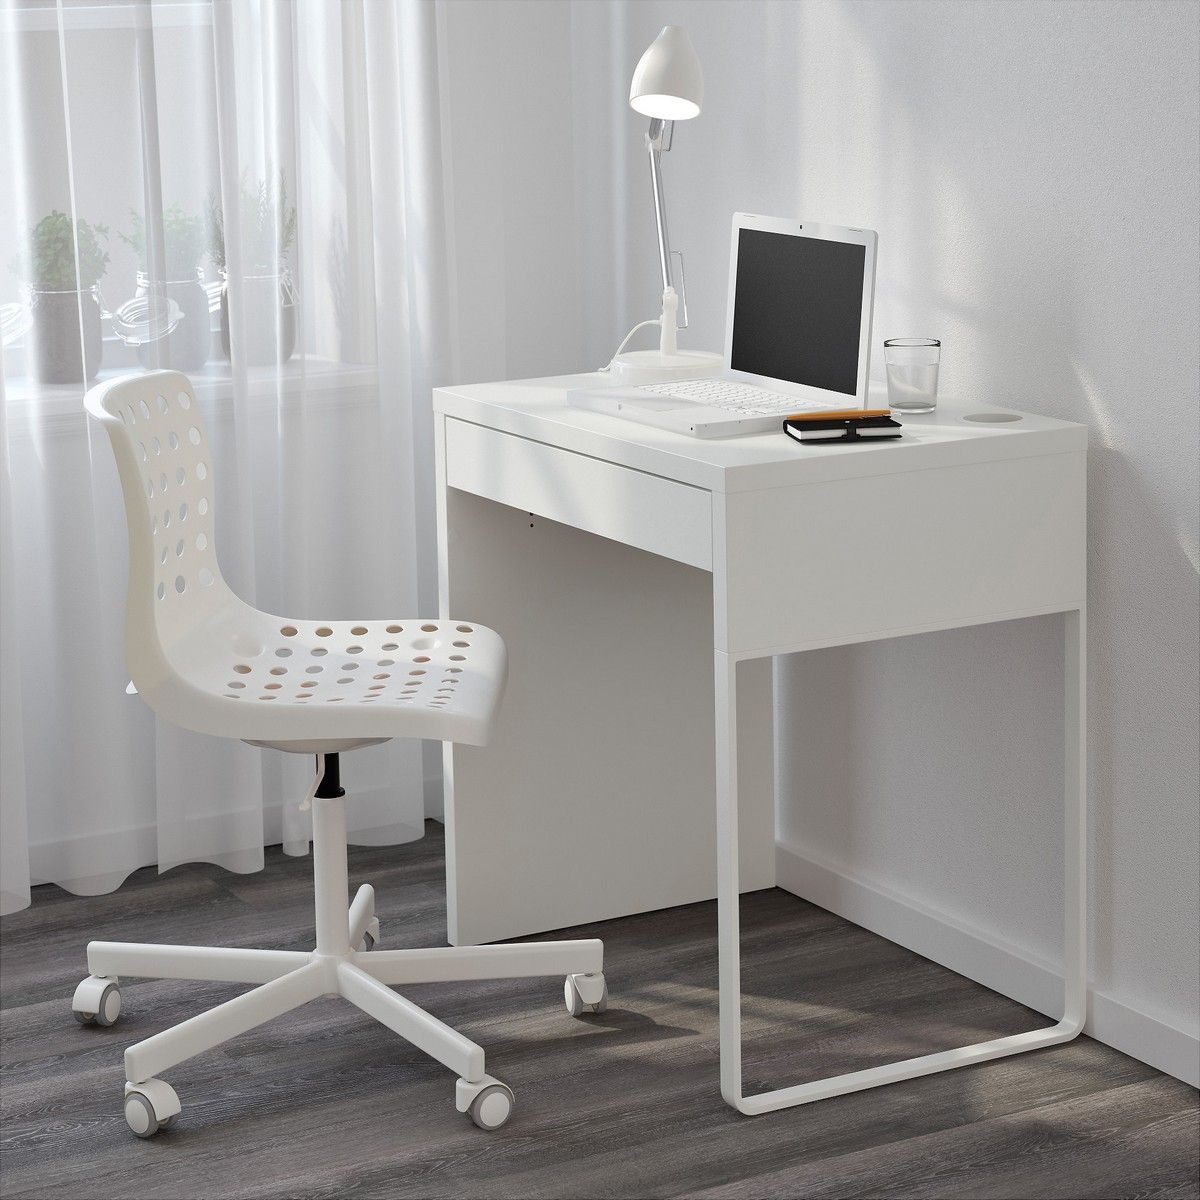 Narrow Computer Desks For Small Spaces Desks For Small Spaces